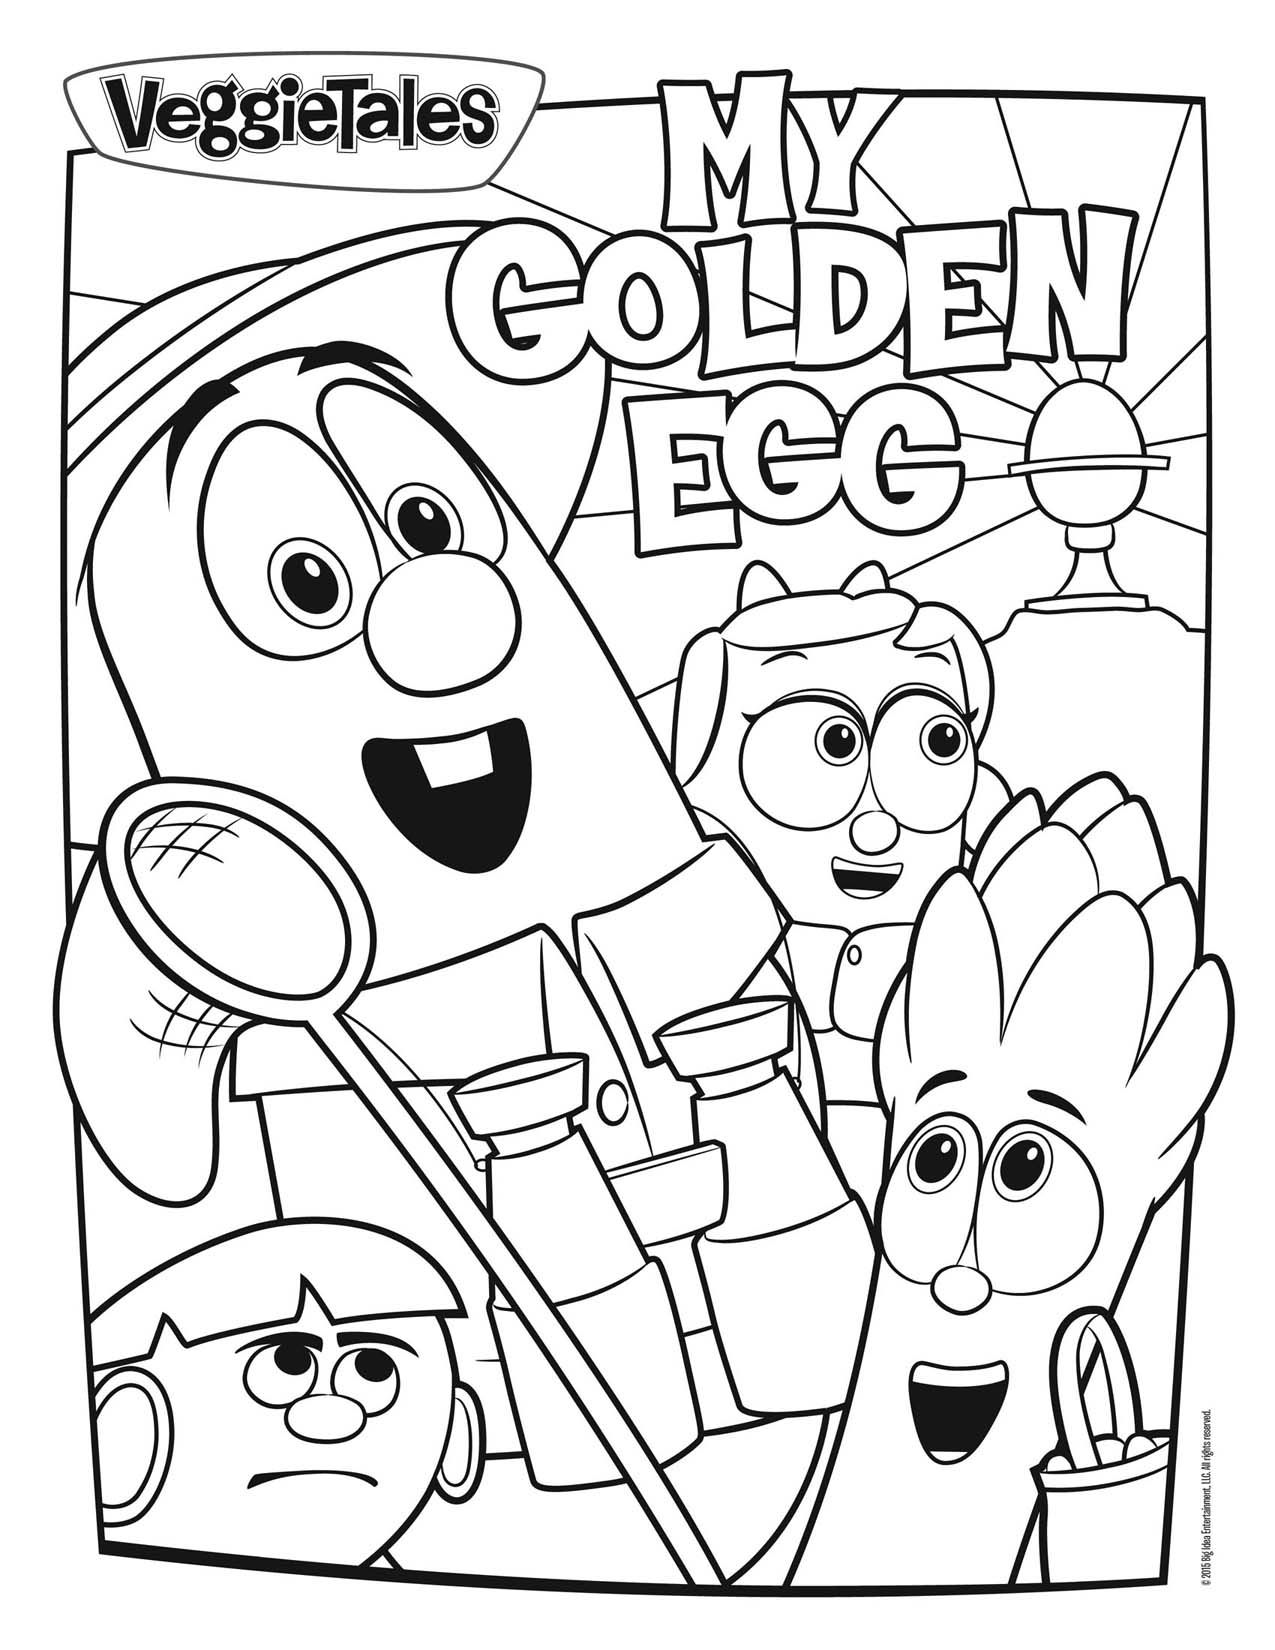 Printable coloring pages veggie tales - Coloring Pages Veggie Tales